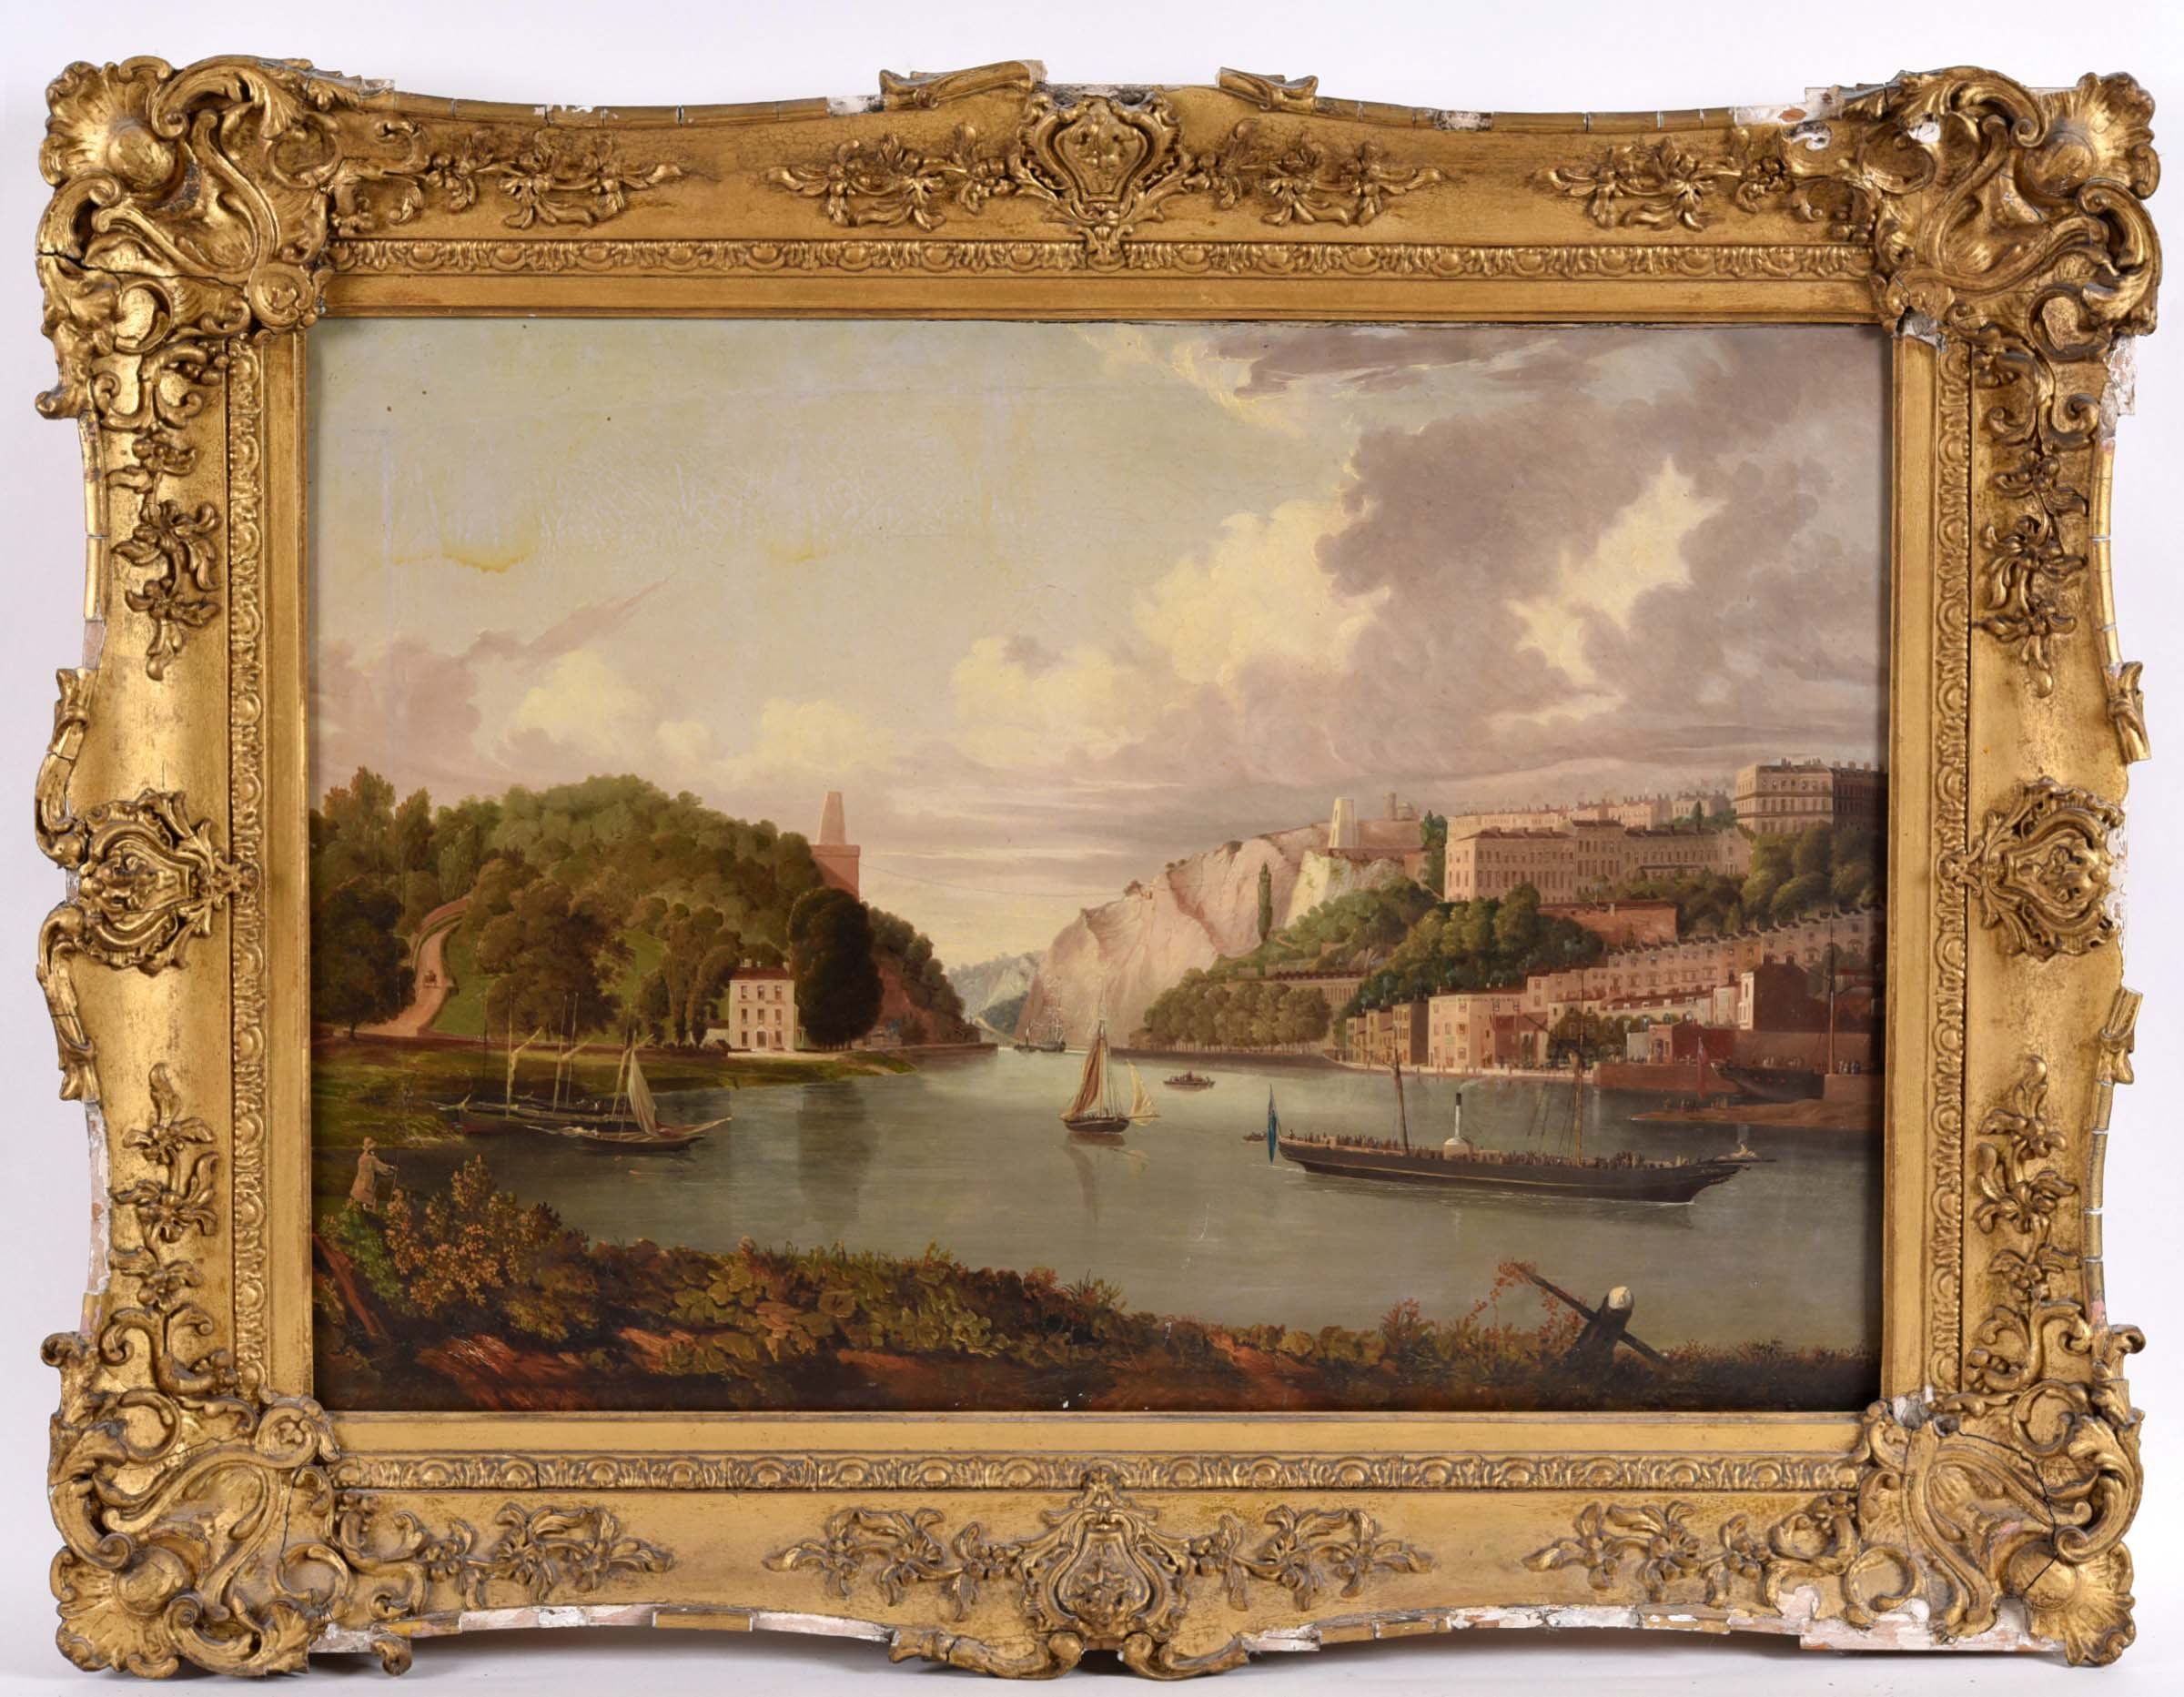 ATTRIBUTED TO JOHN SYER (1815-1885) THE AVON GORGE AT BRISTOL, LOOKING TOWARDS THE CLIFTON BRIDGE